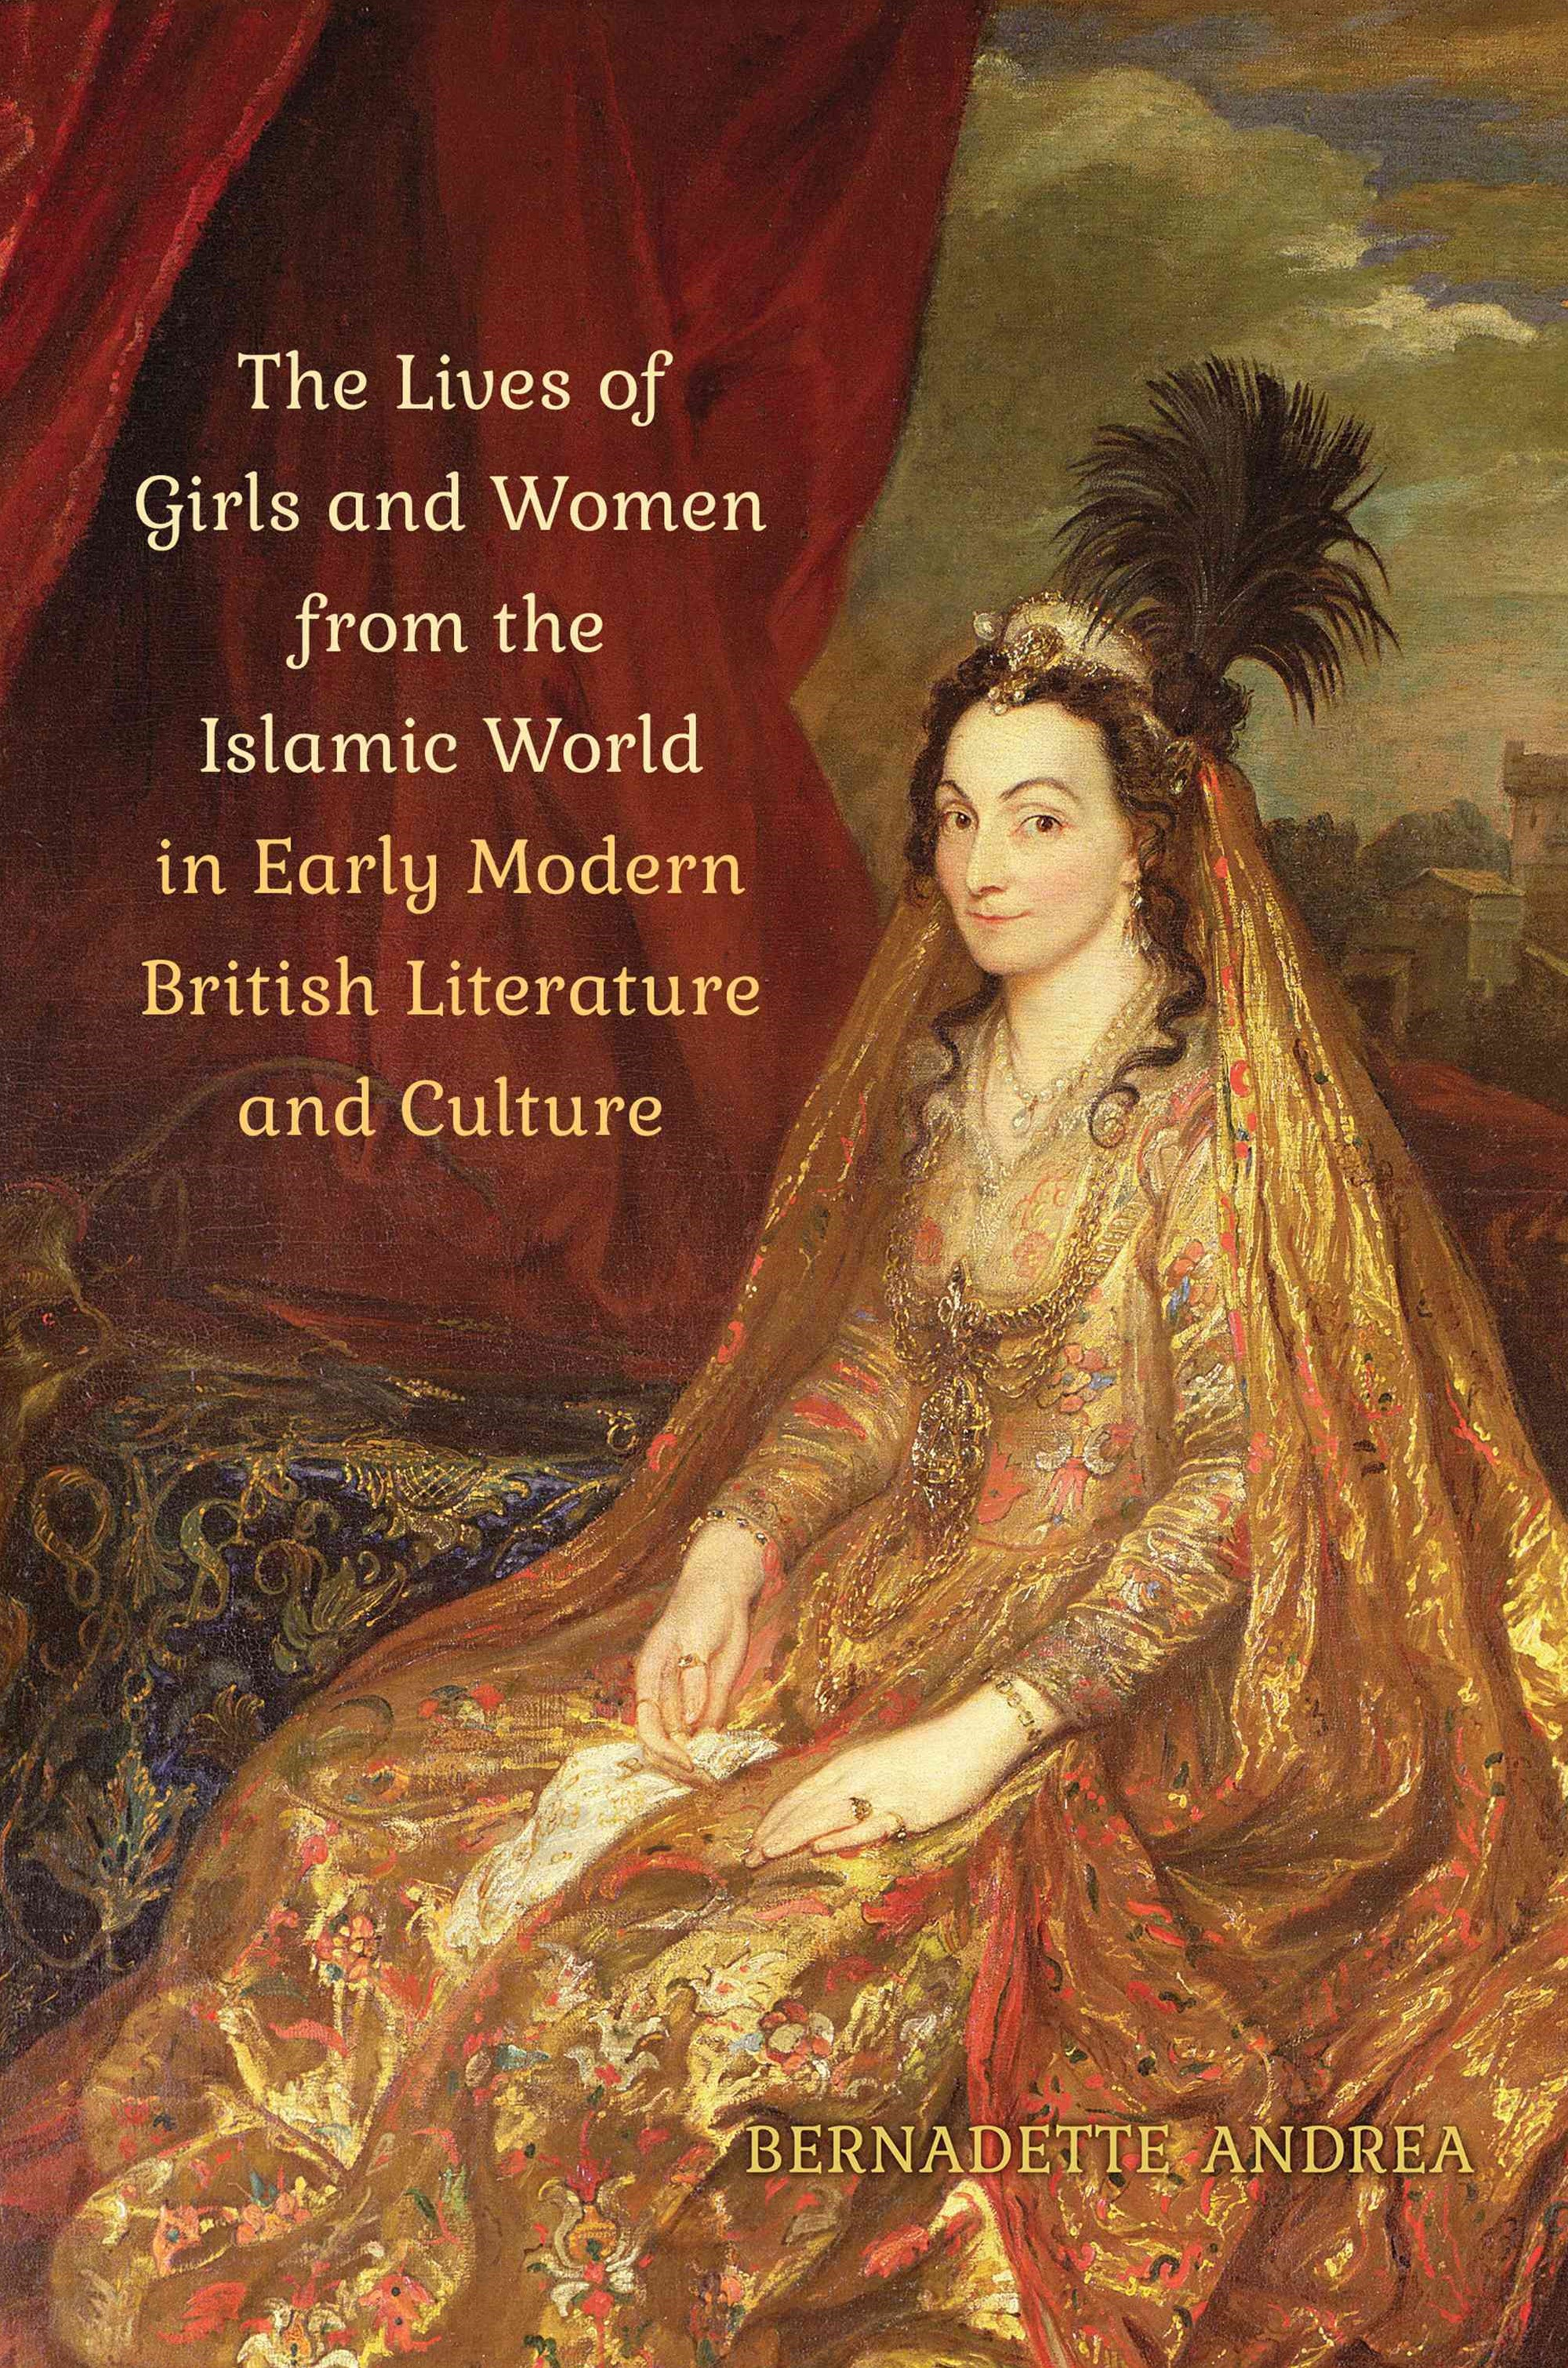 Lives of Girls and Women from the Islamic World in Early Modern British Literature and Culture